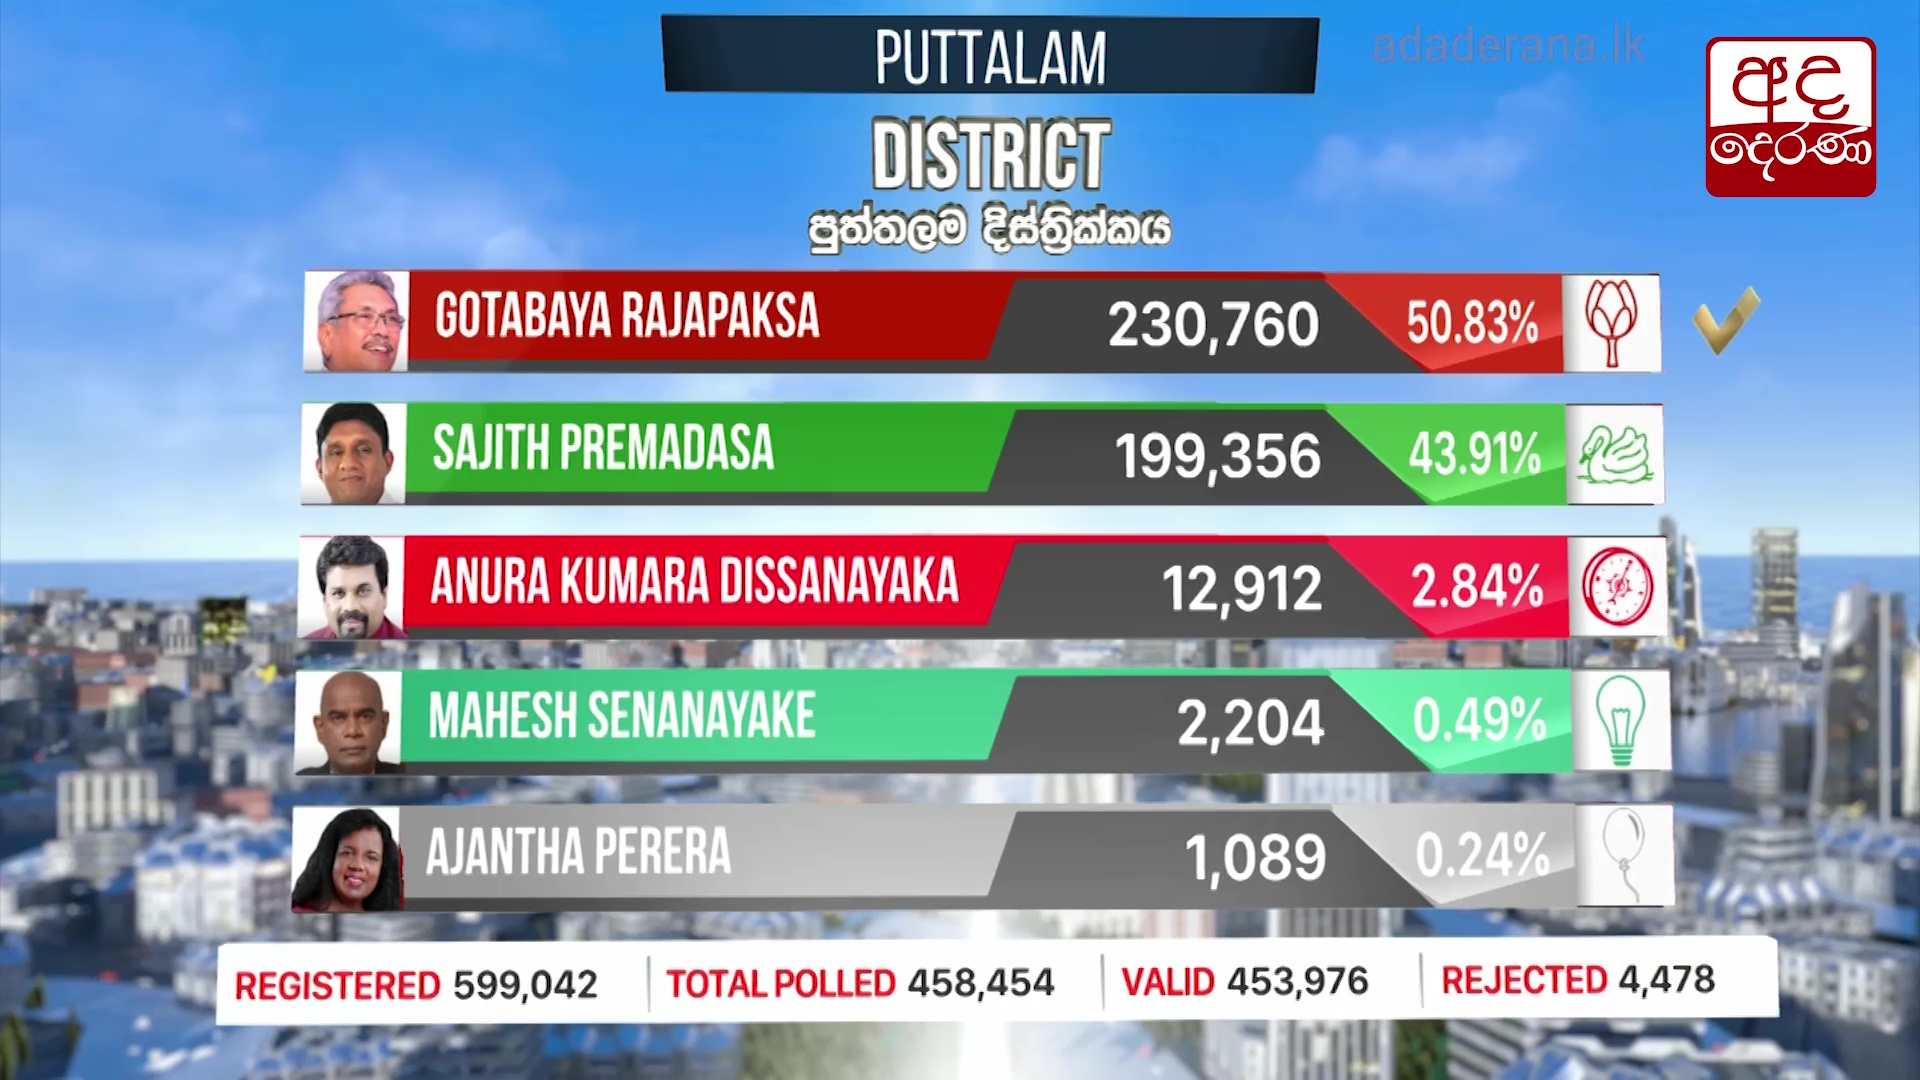 Presidential Election 2019: Puttalam District results